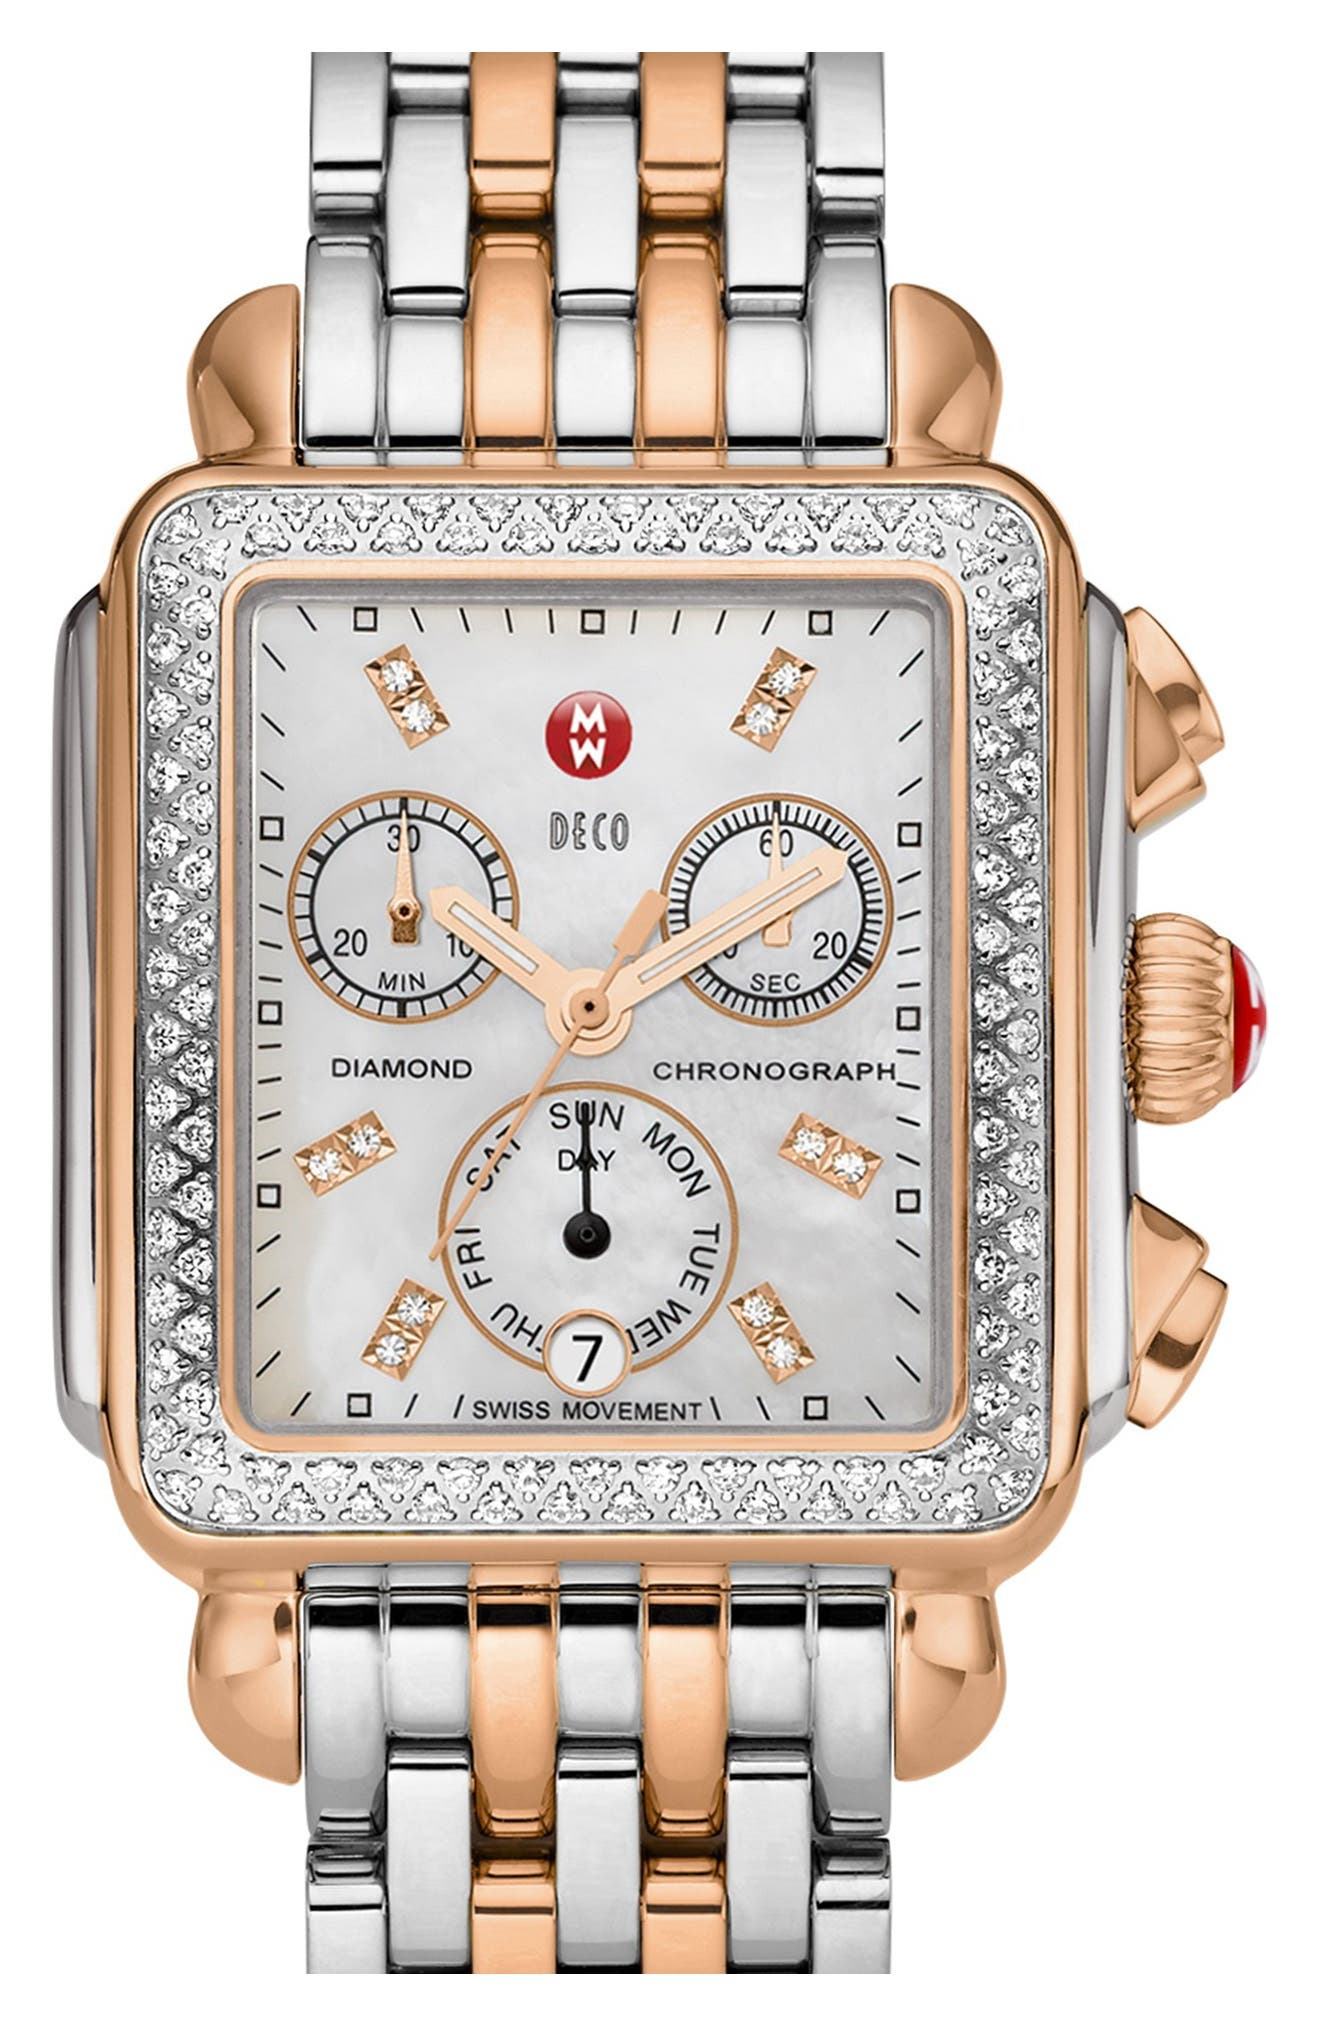 MICHELE, Deco Diamond Diamond Dial Watch Case, 33mm x 35mm, Alternate thumbnail 2, color, SILVER/ ROSE GOLD